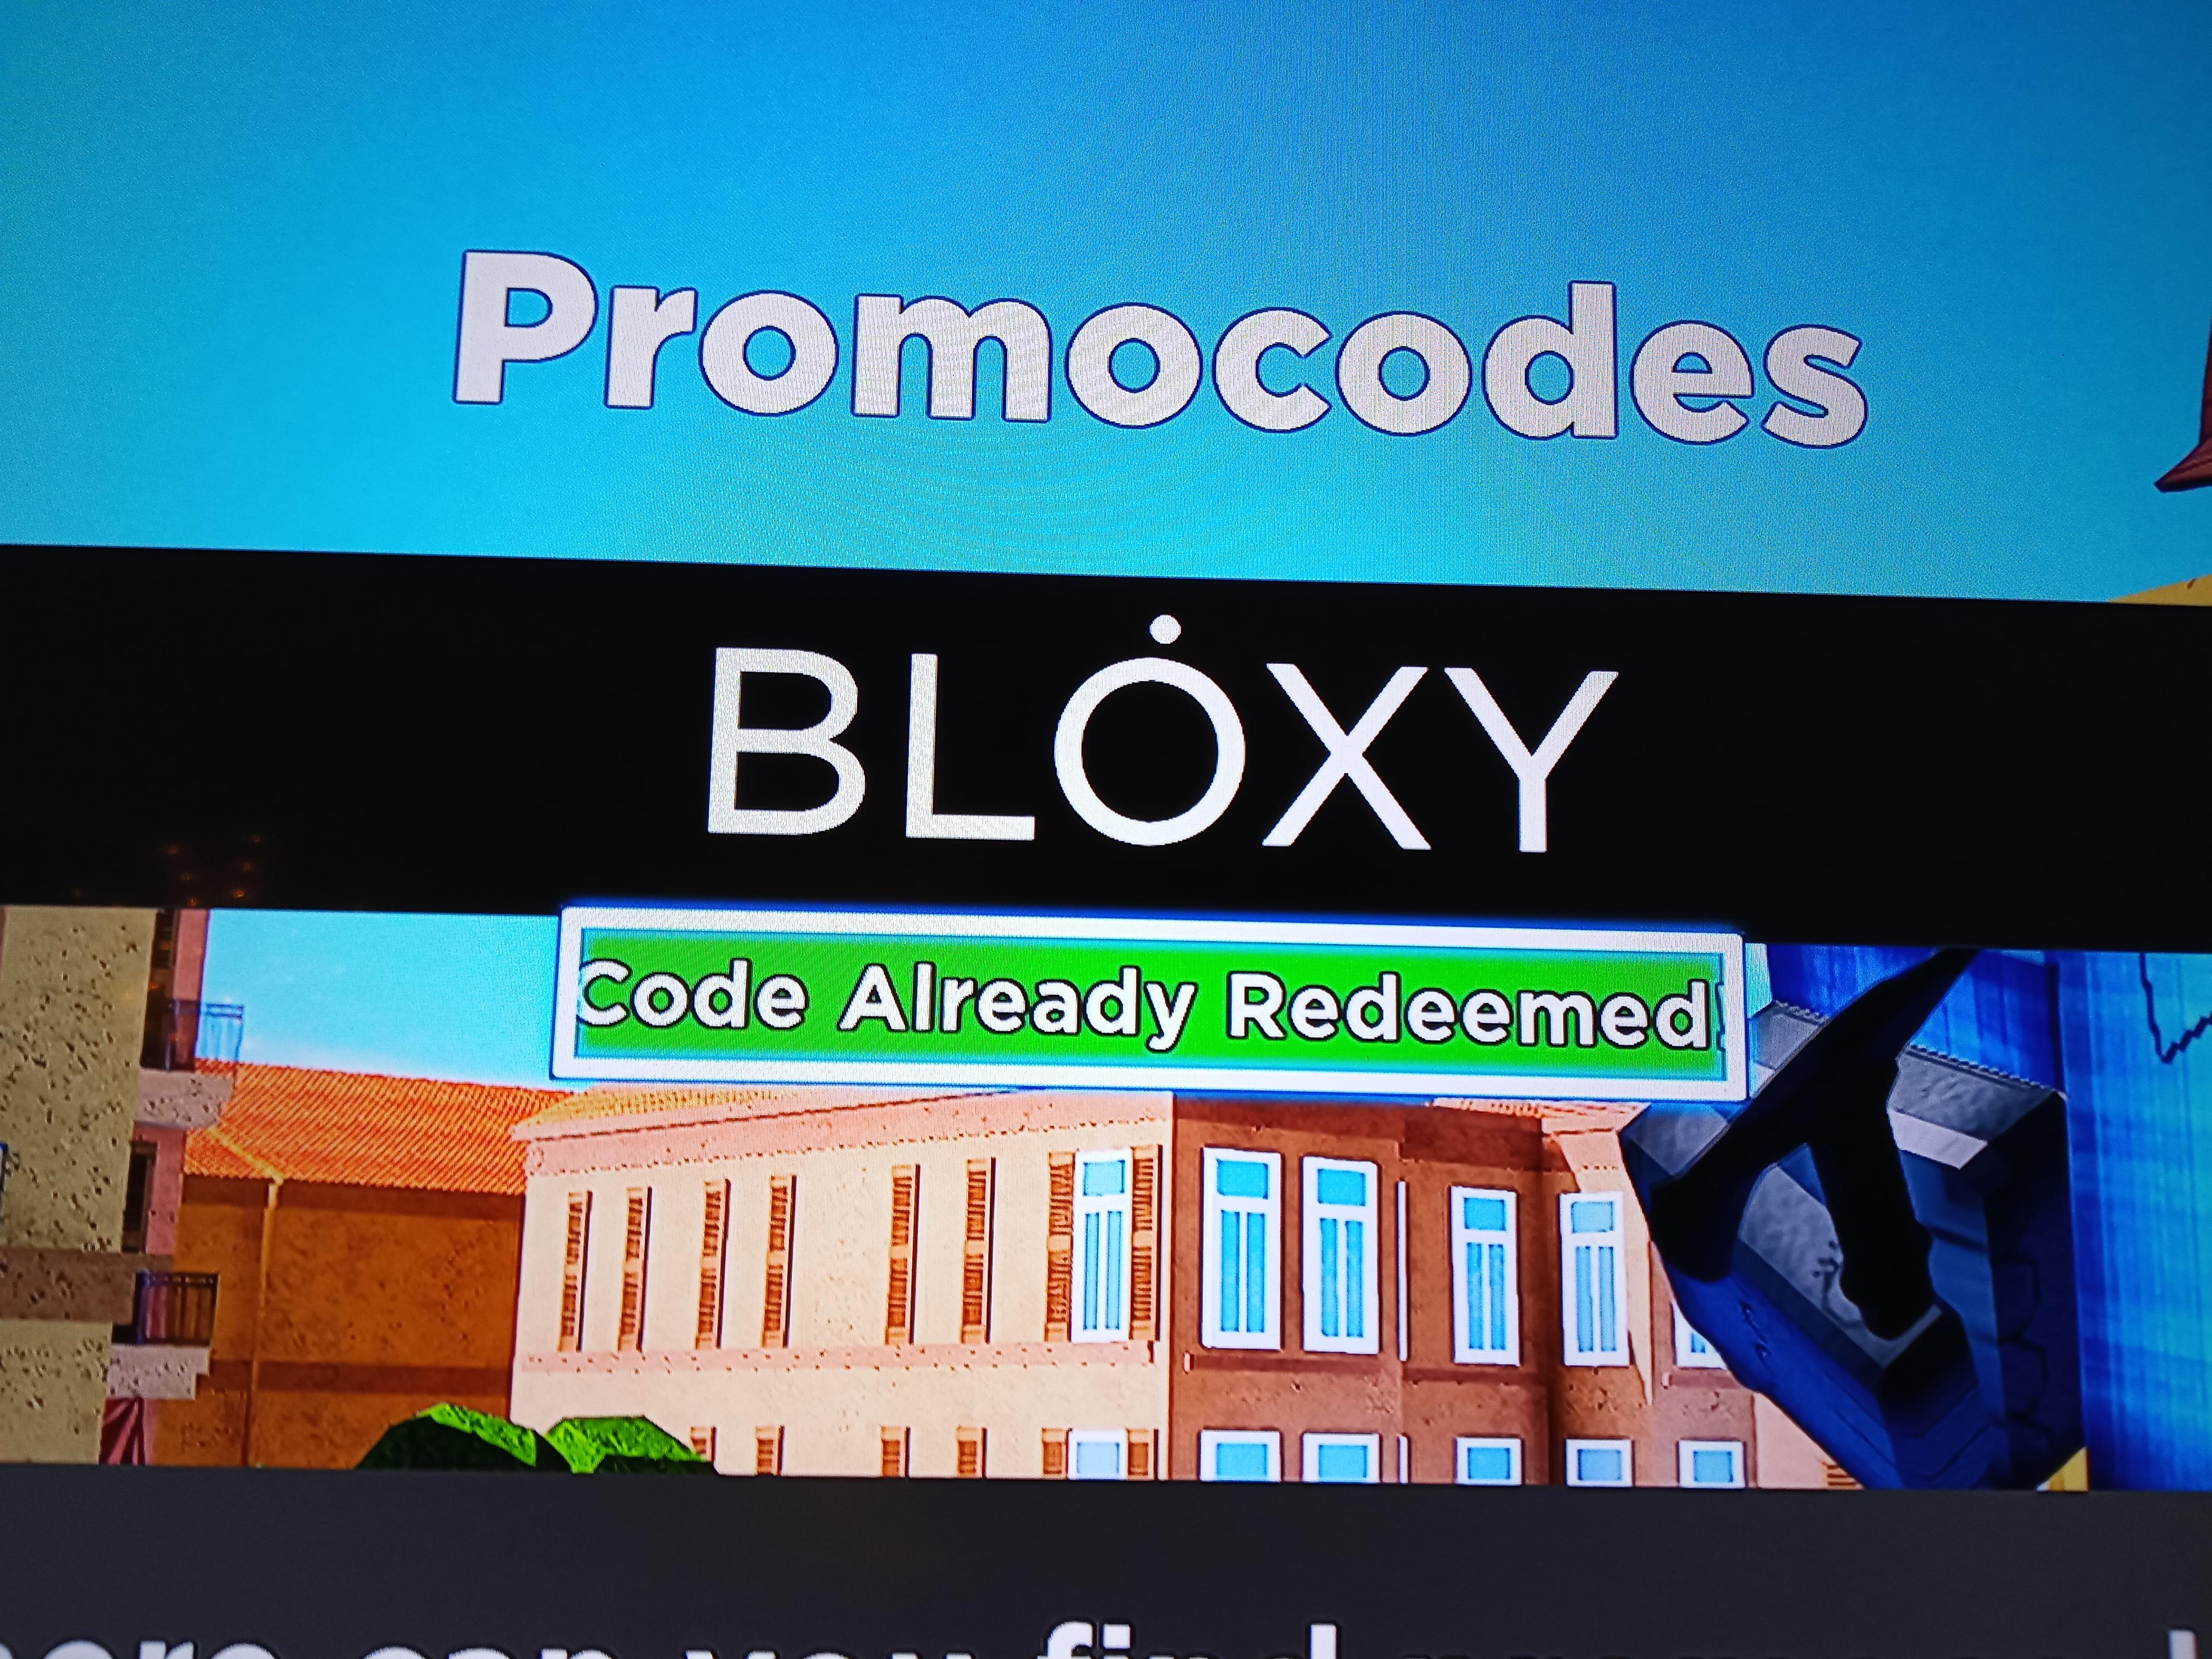 putting the code bloxy on arsenal